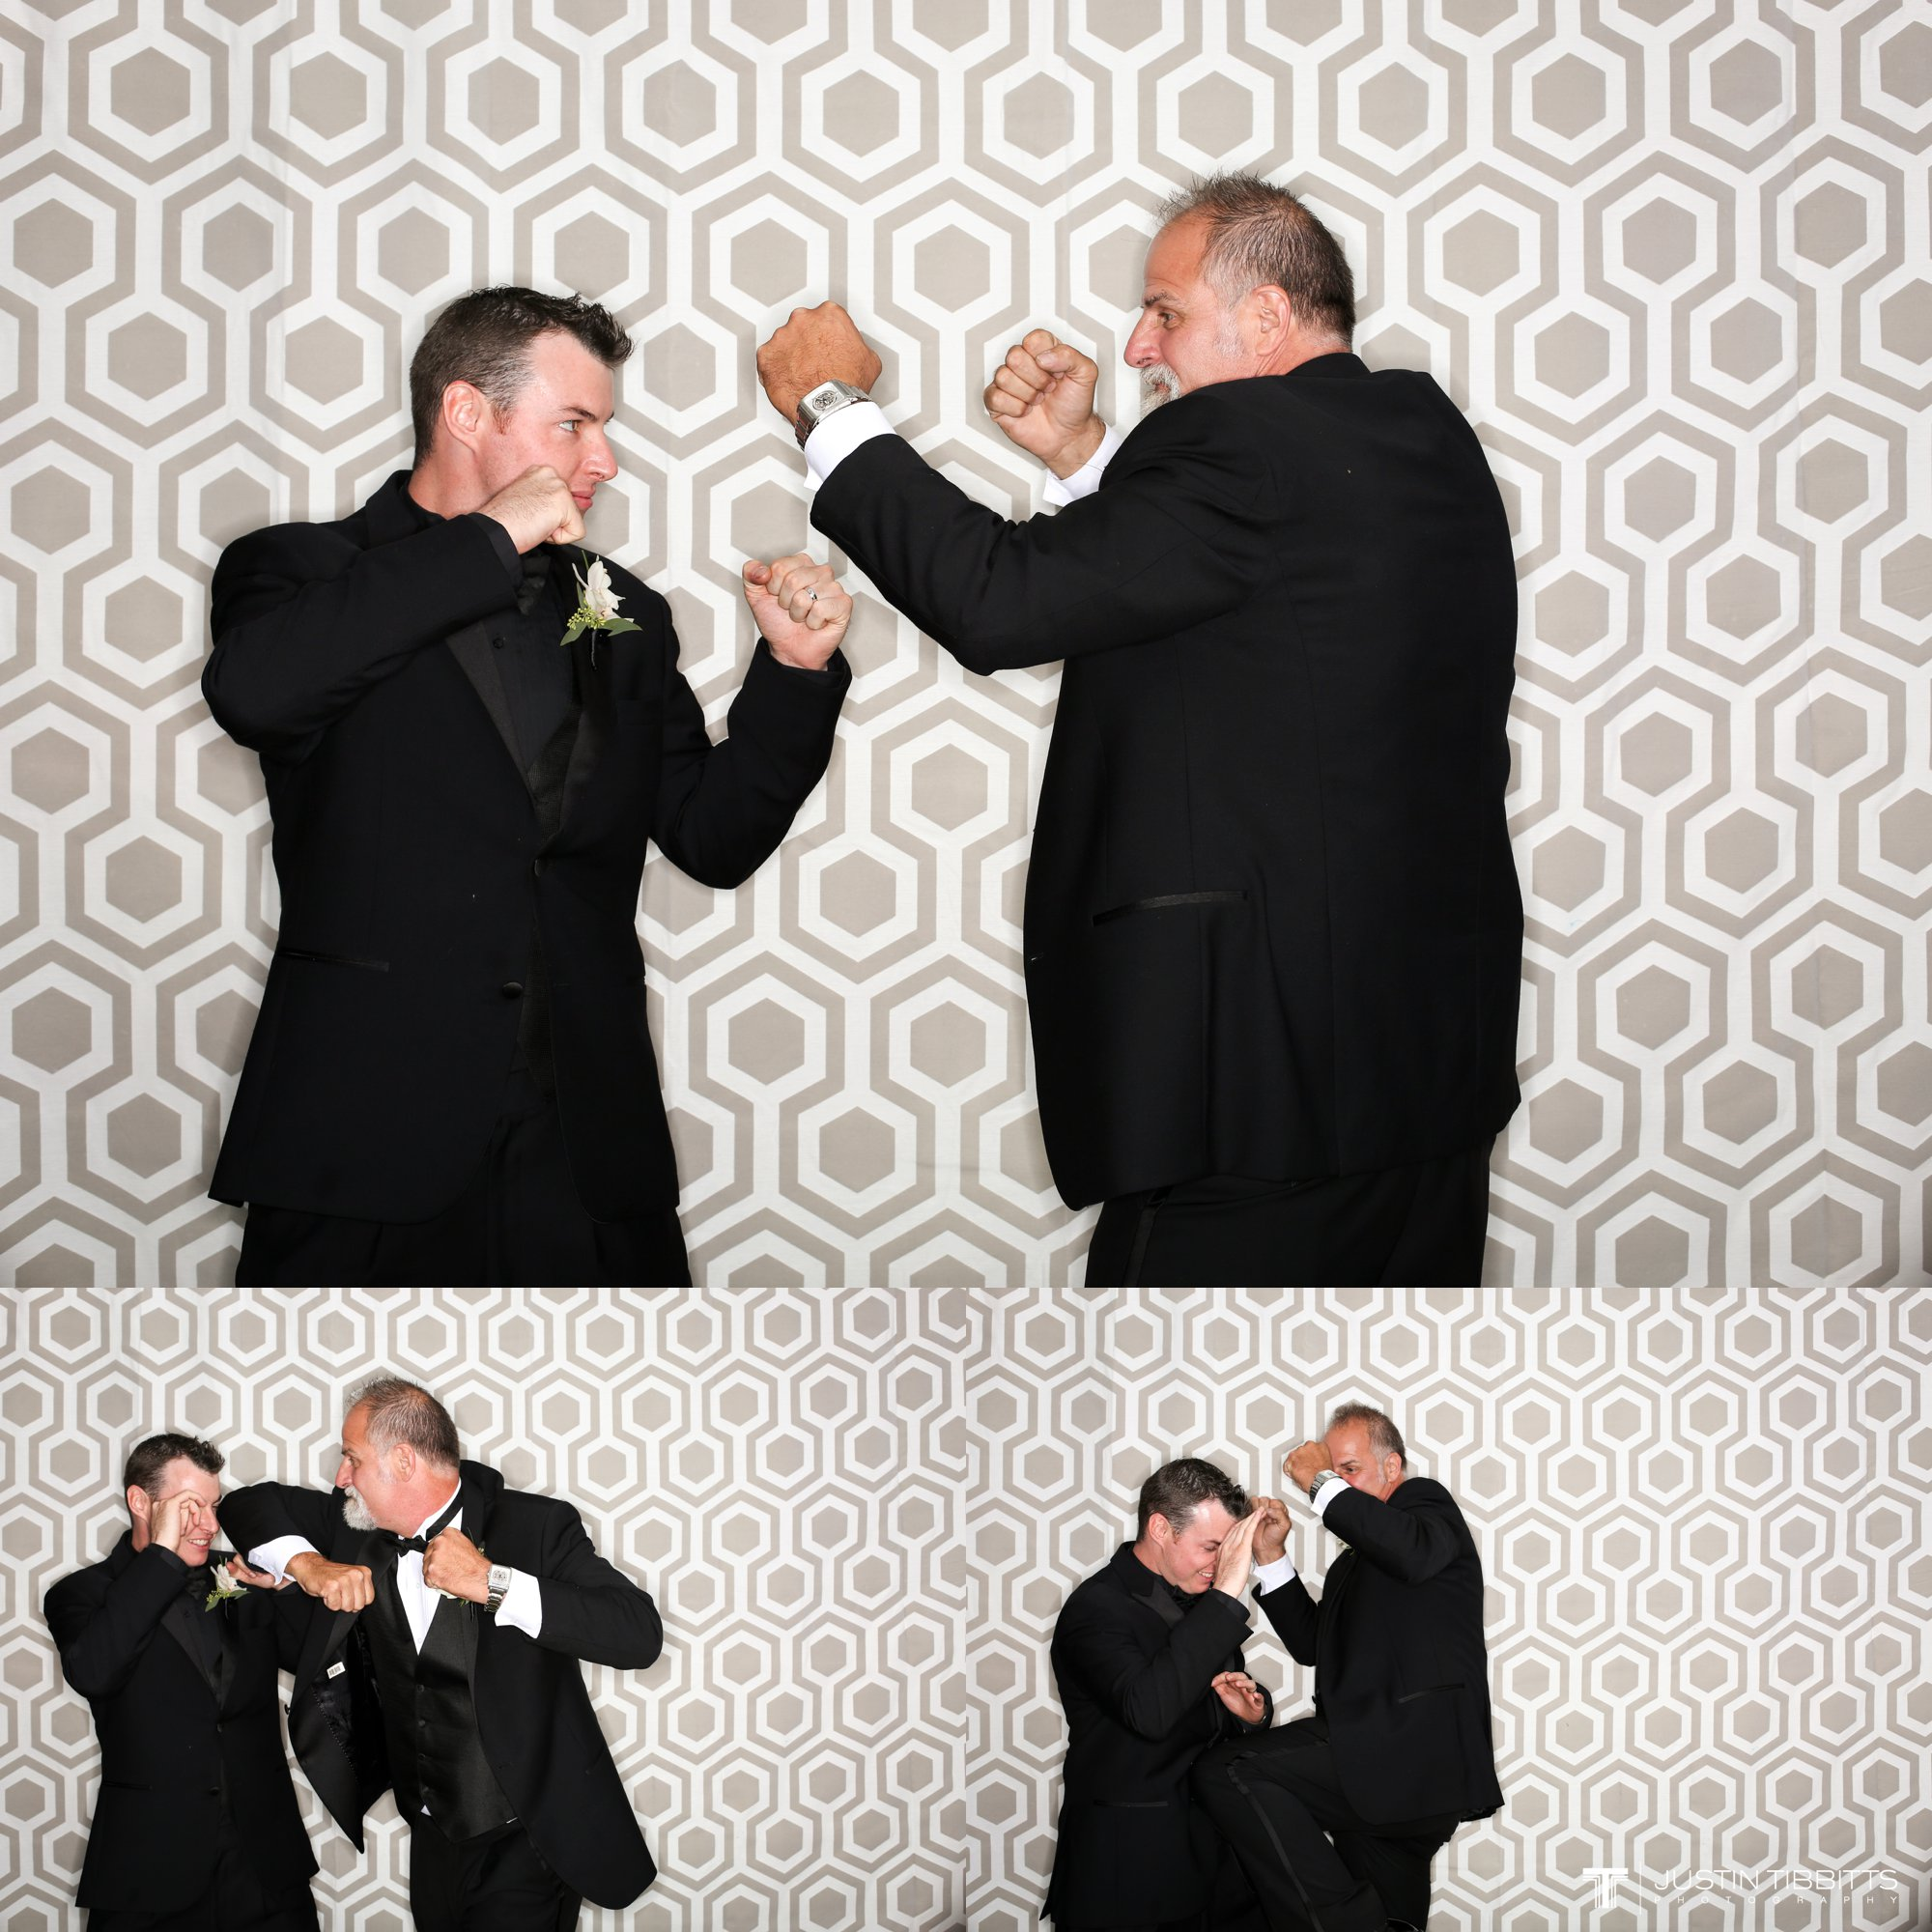 Justin Tibbitts Photography Mr and Mrs Zaffino Deannas Bridal Wedding Photo Booth-75